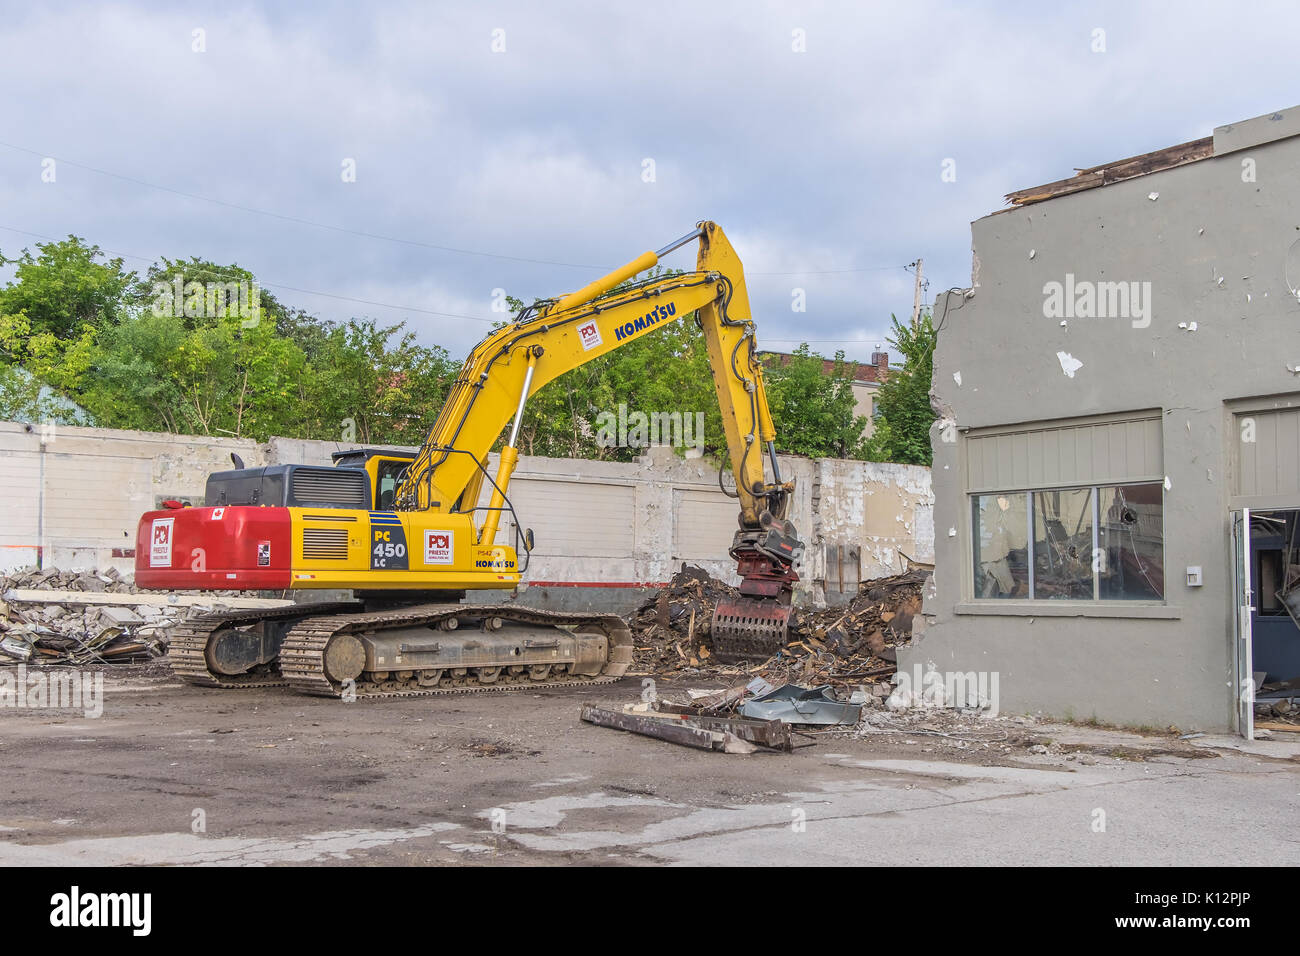 Heavy equipment demolishes and old building in downtown Orillia Ontario to make way for new condominiums. - Stock Image